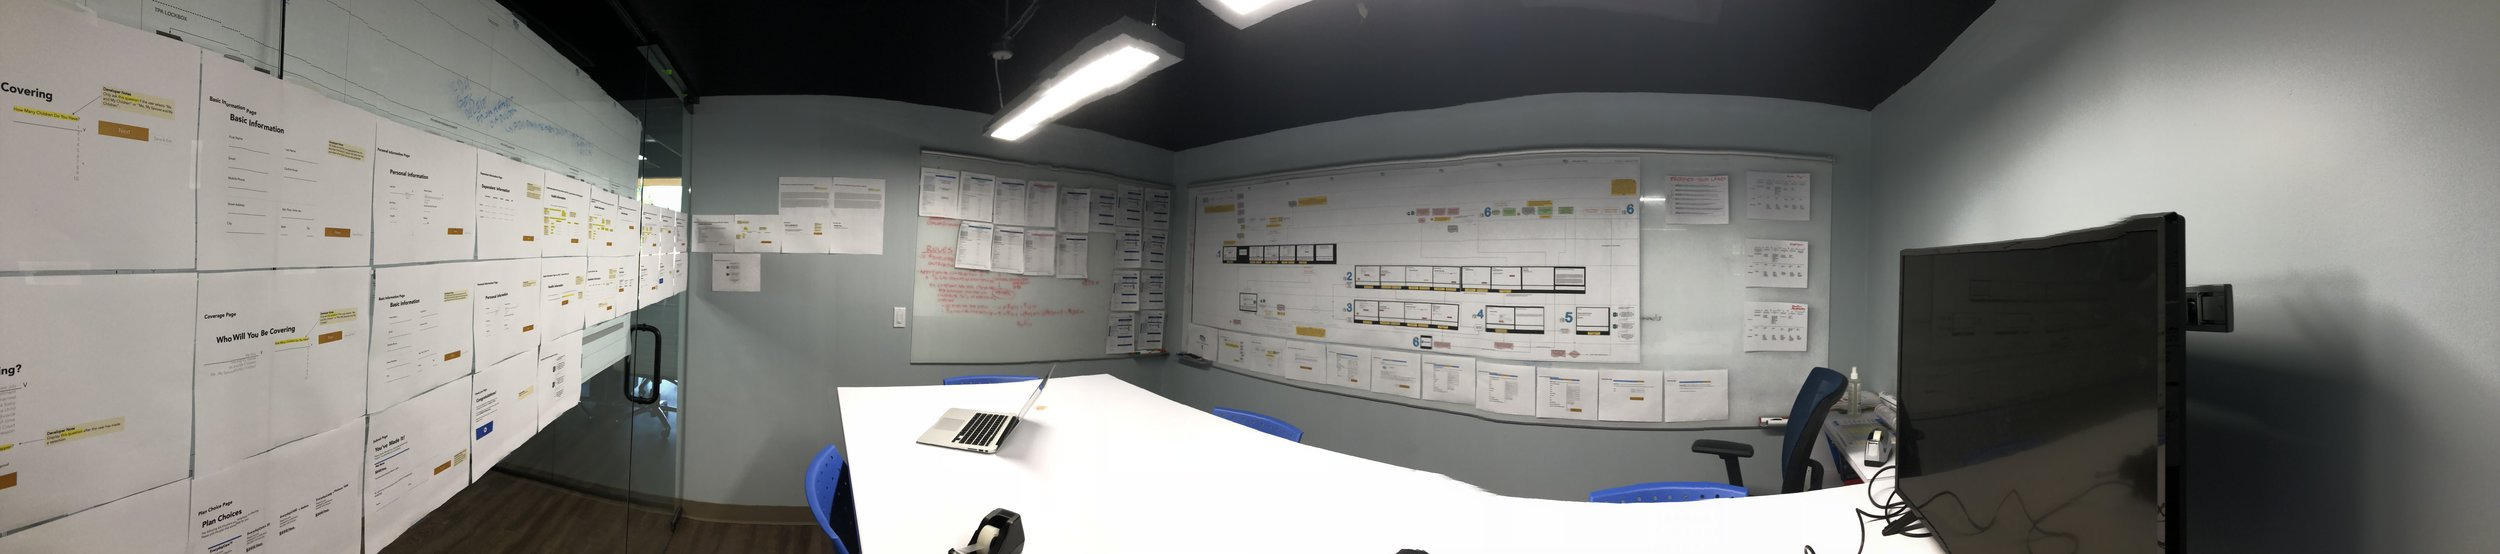 Methodyze transforms conference rooms into end-to-end workflow masterpieces from which to better plan end-to-end flow of information and user actions in order to make systems elegantly sync and sing!